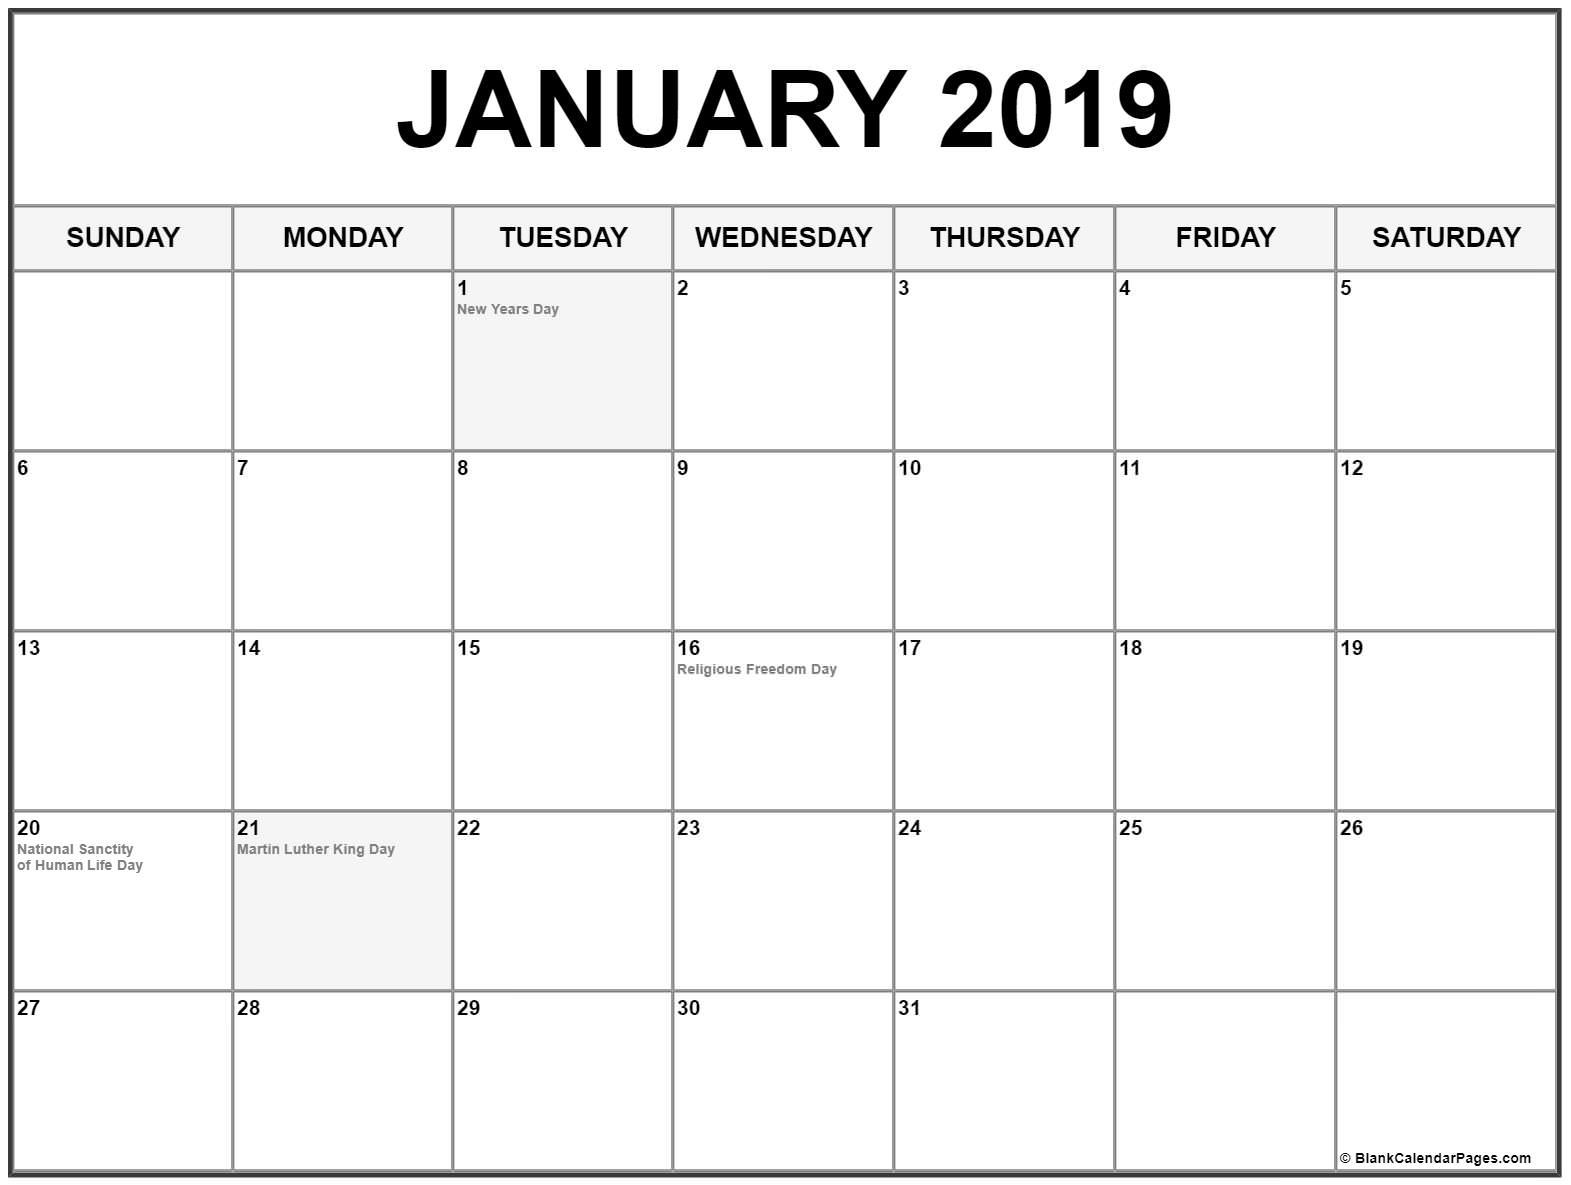 Collection Of January 2019 Calendars With Holidays intended for Picture Of A January Calender